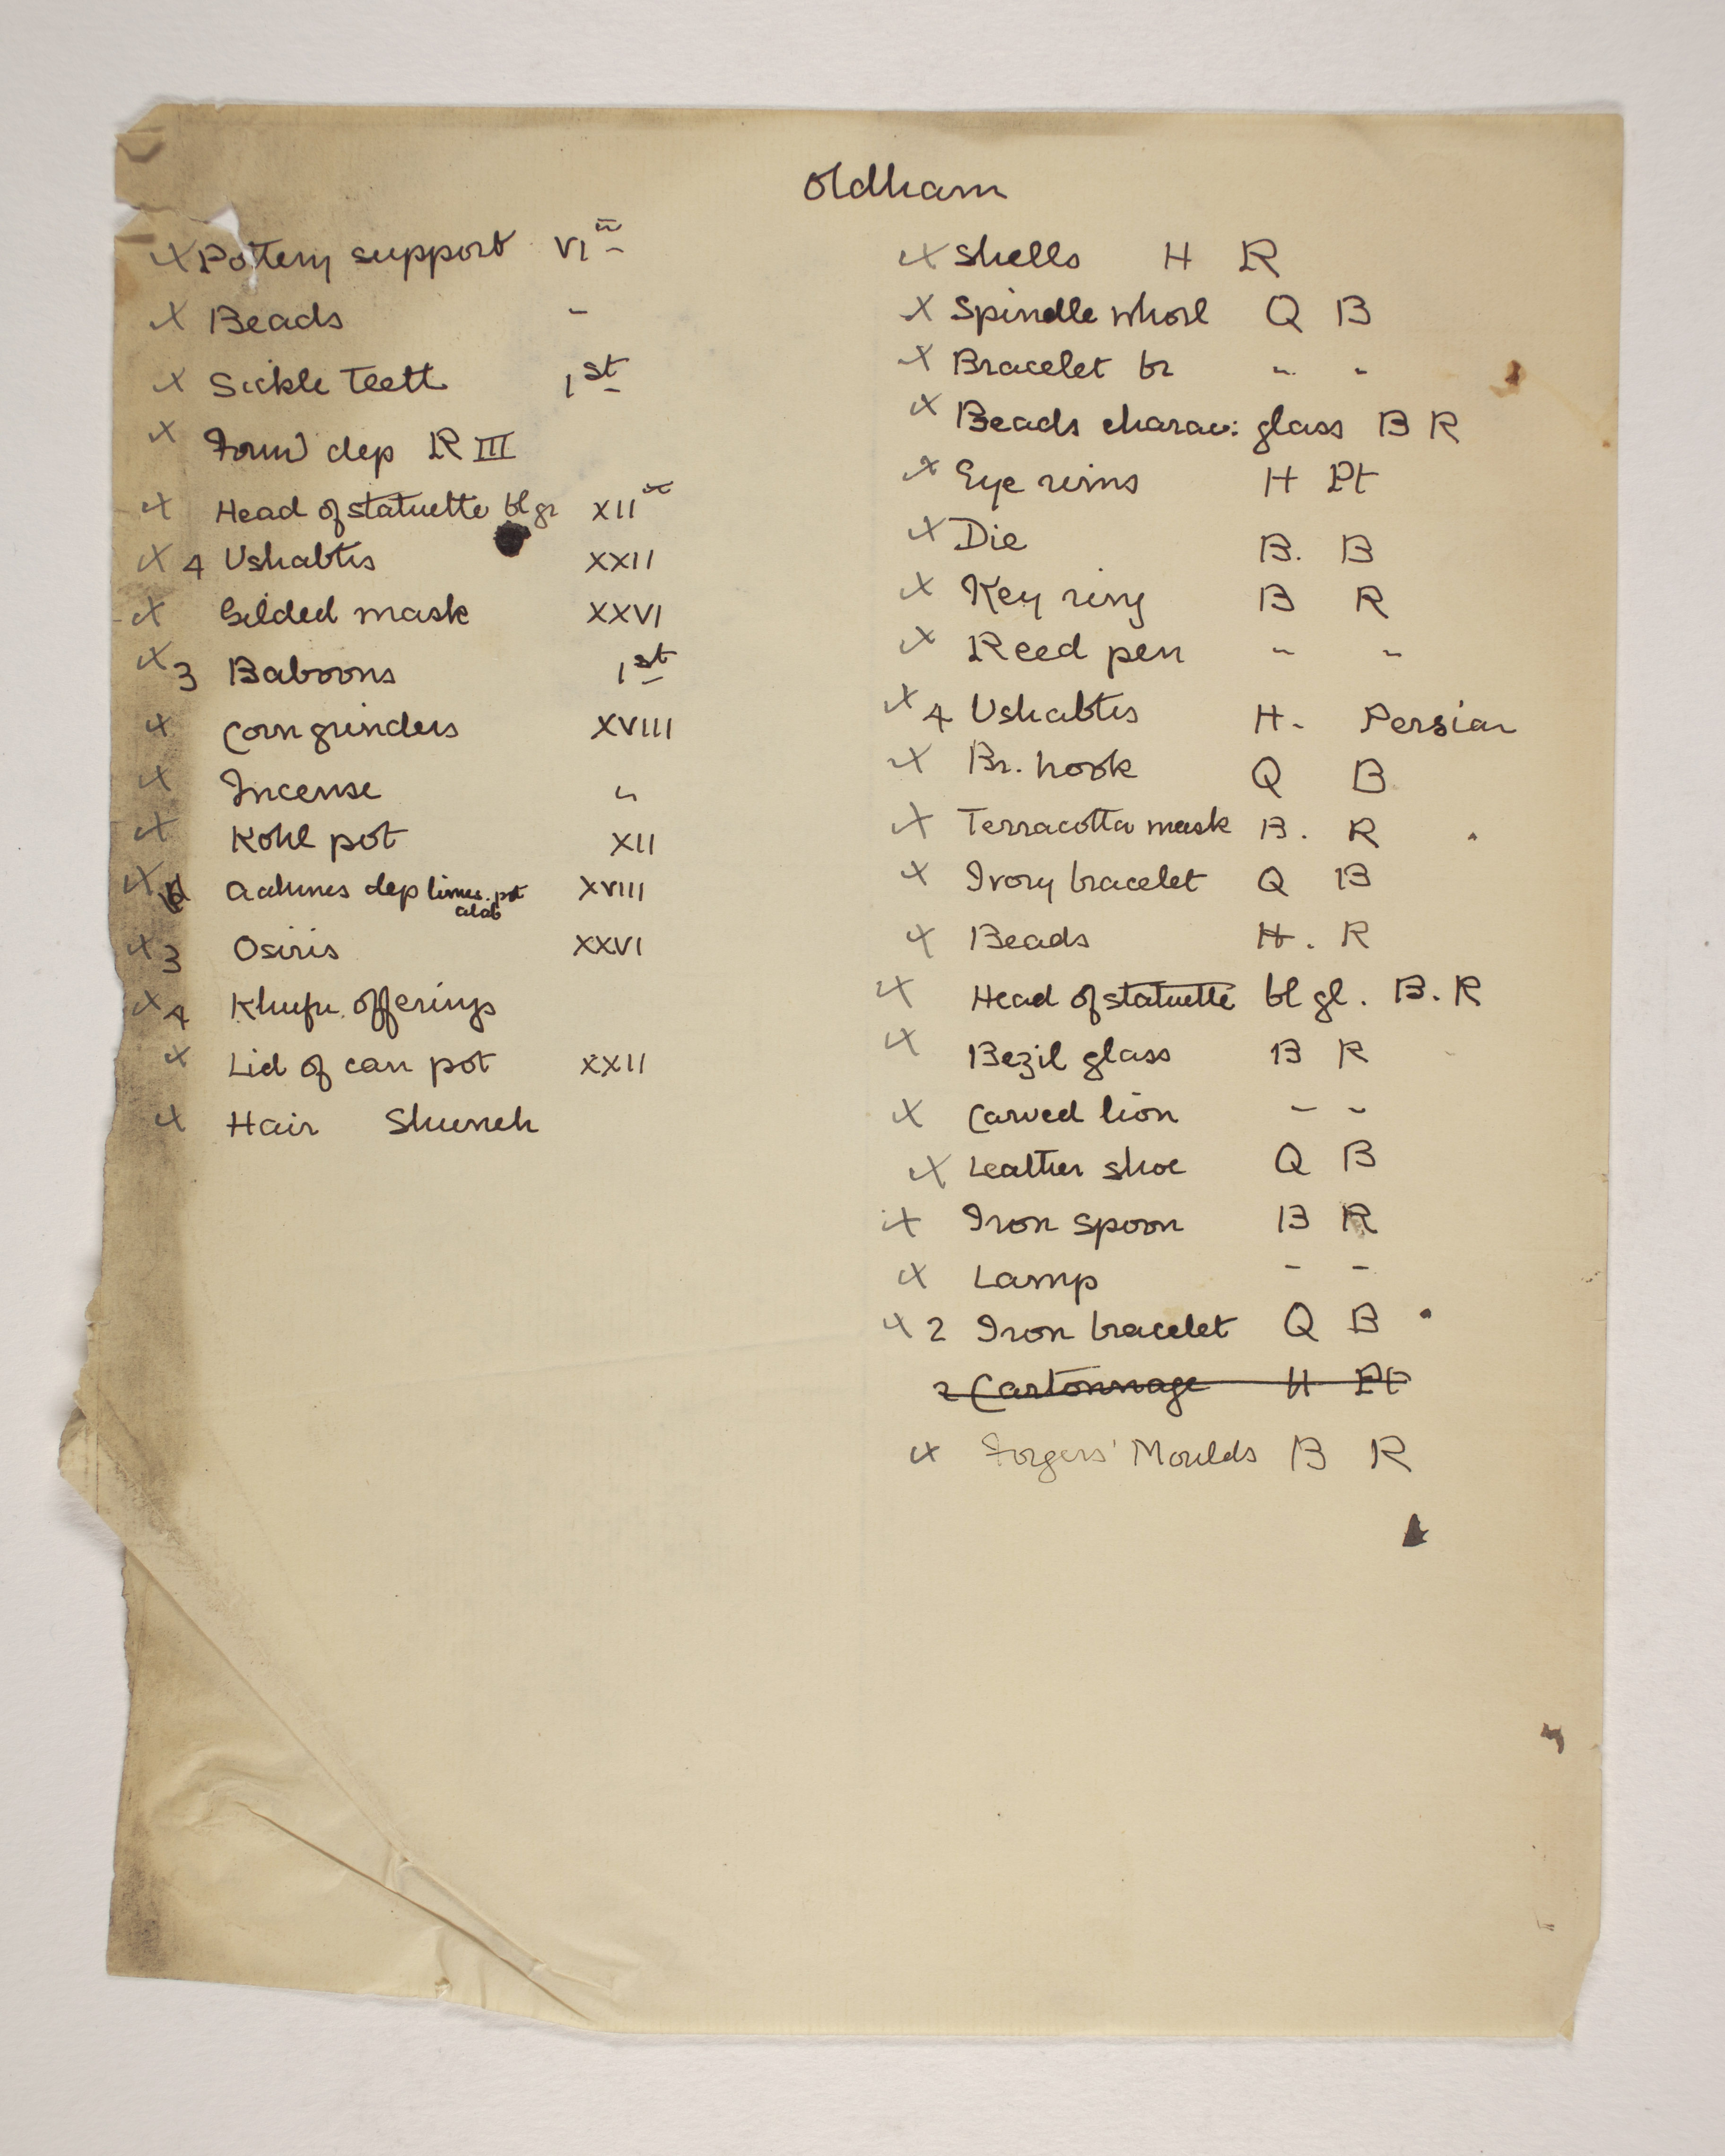 1902-03 Abydos Individual institution list  PMA/WFP1/D/11/61